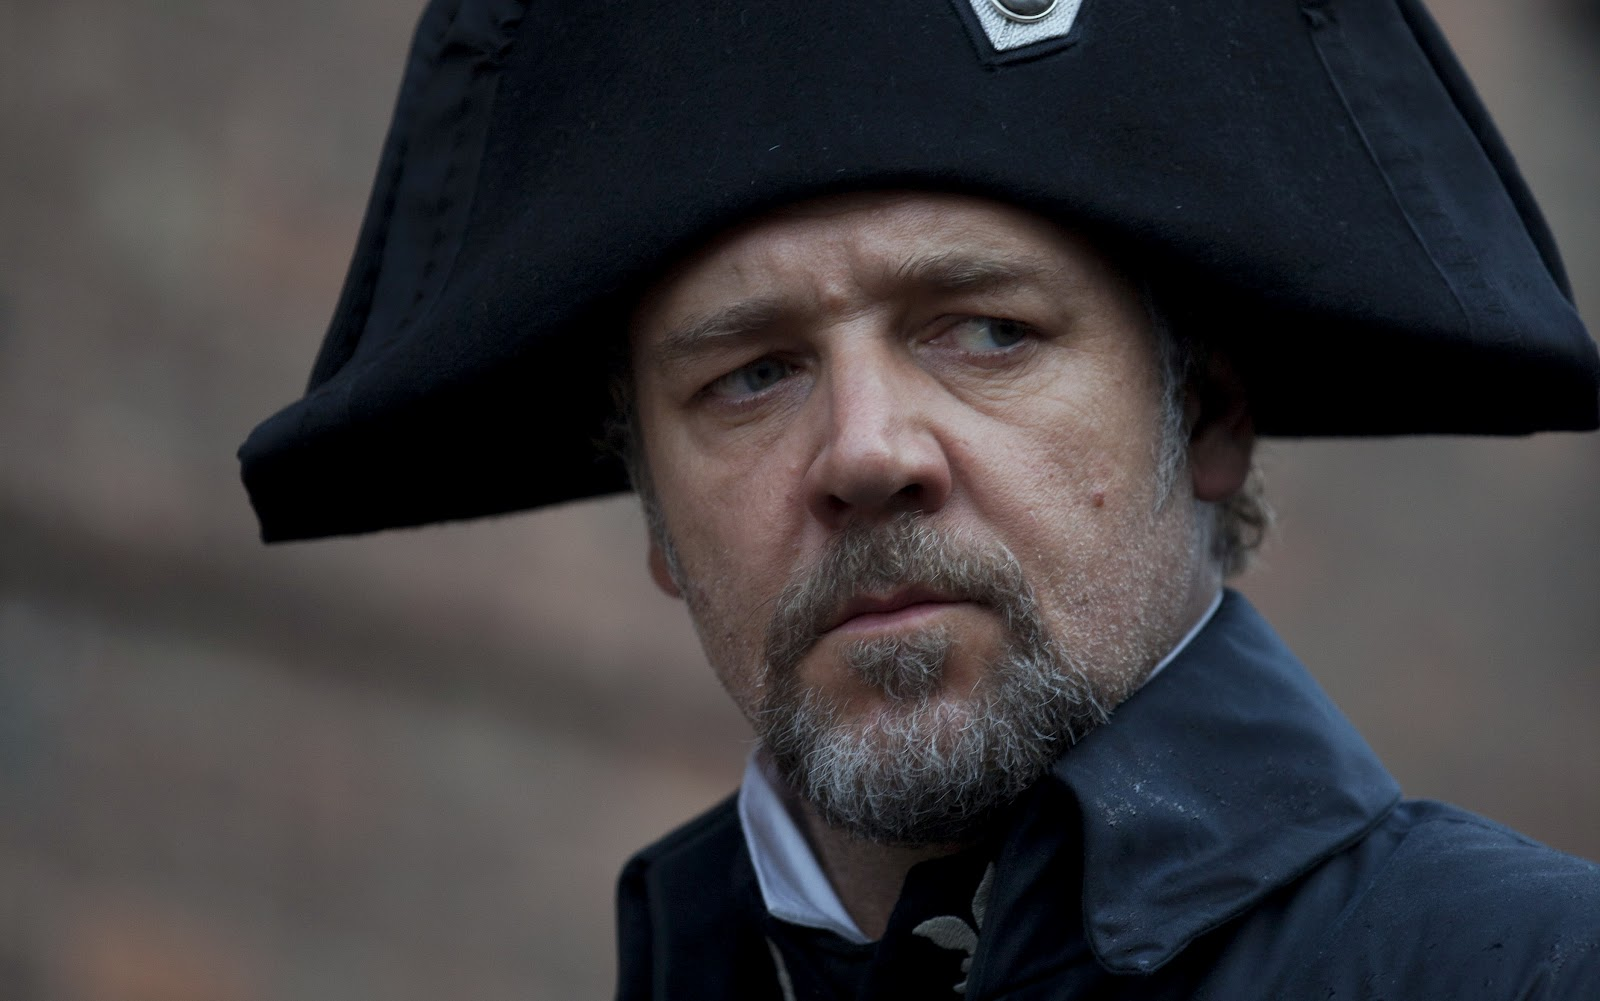 russell-crowe-les-miserables-image1